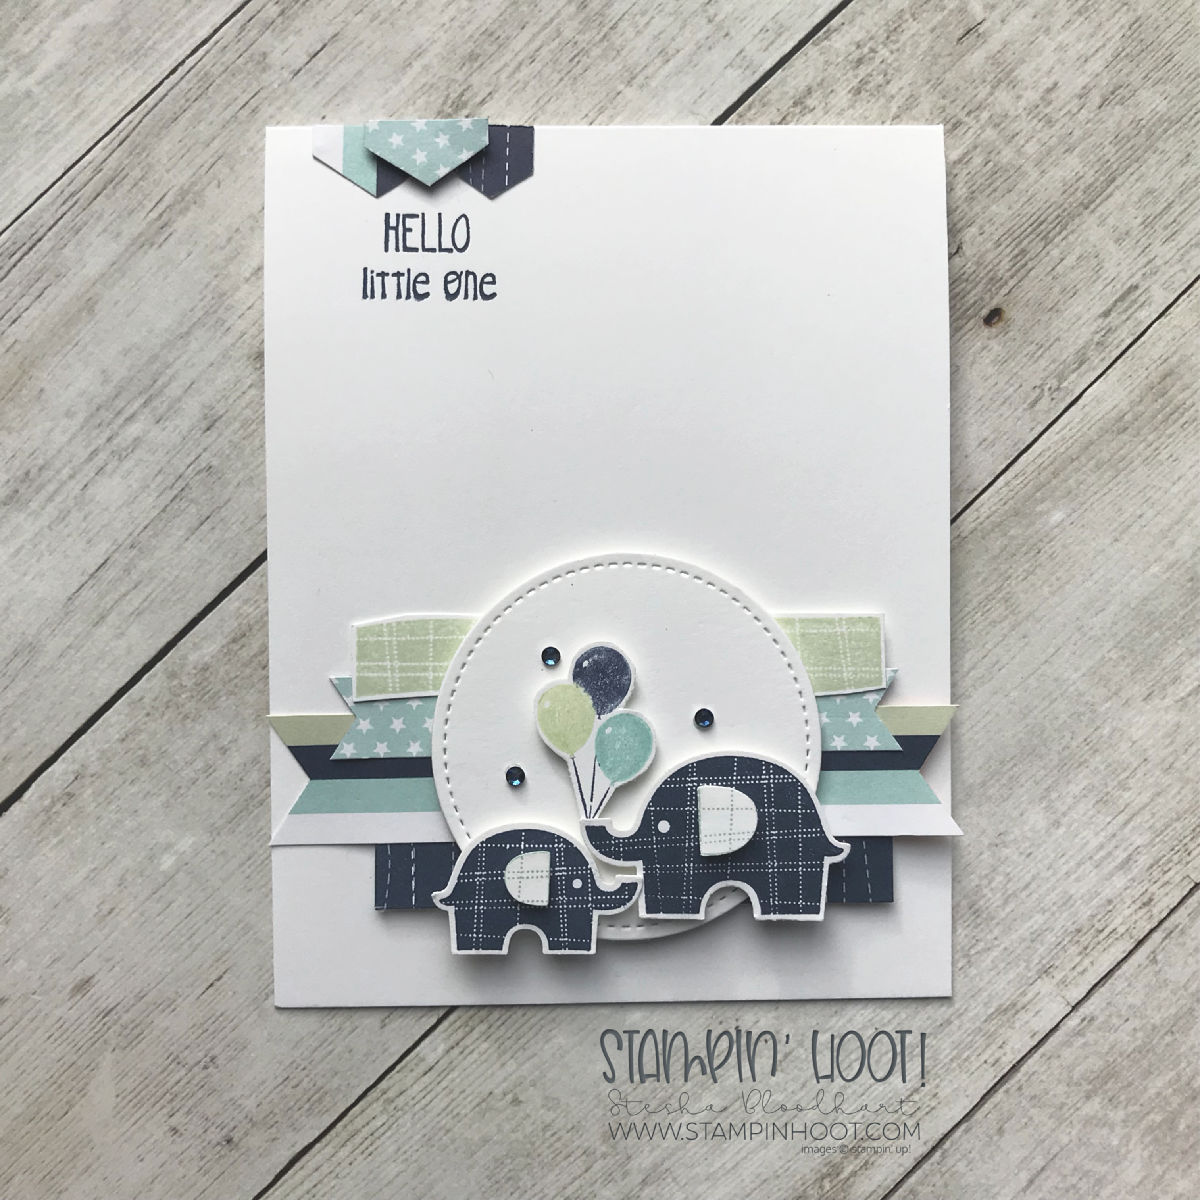 Little Elephant Bundle by Stampin' Up! Baby Card created by Stesha Bloodhart, Stampin' Hoot! #steshabloodhart #stampinhoot